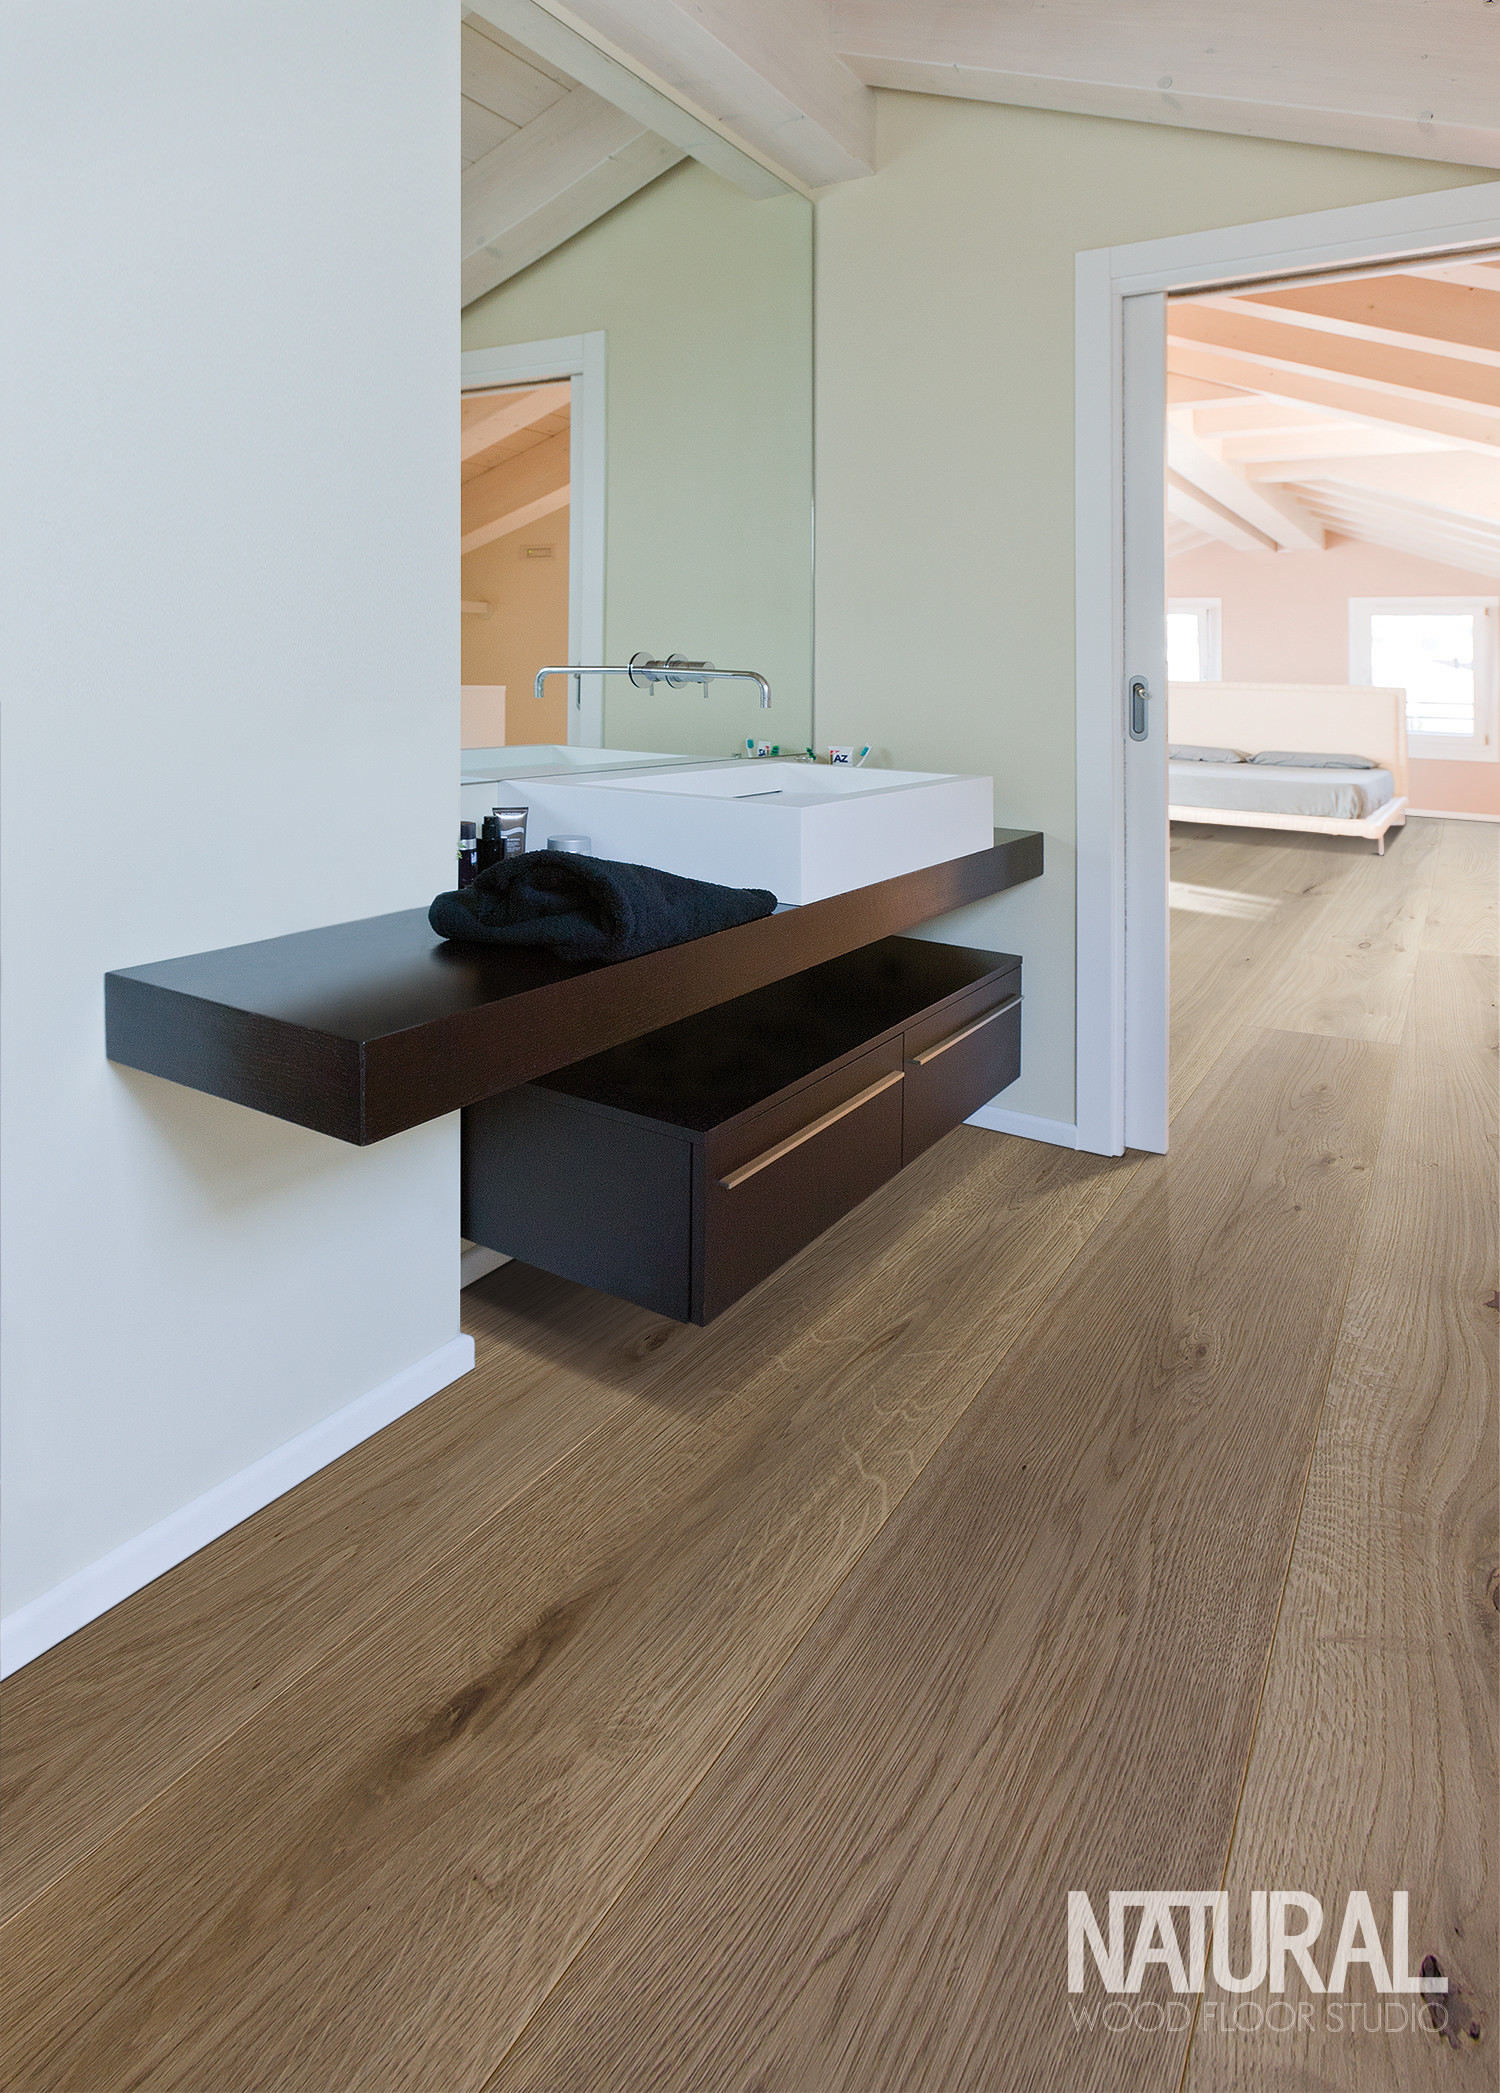 hardwood floor installation contractors of natural wood floor studio the fine art of wood floors with design